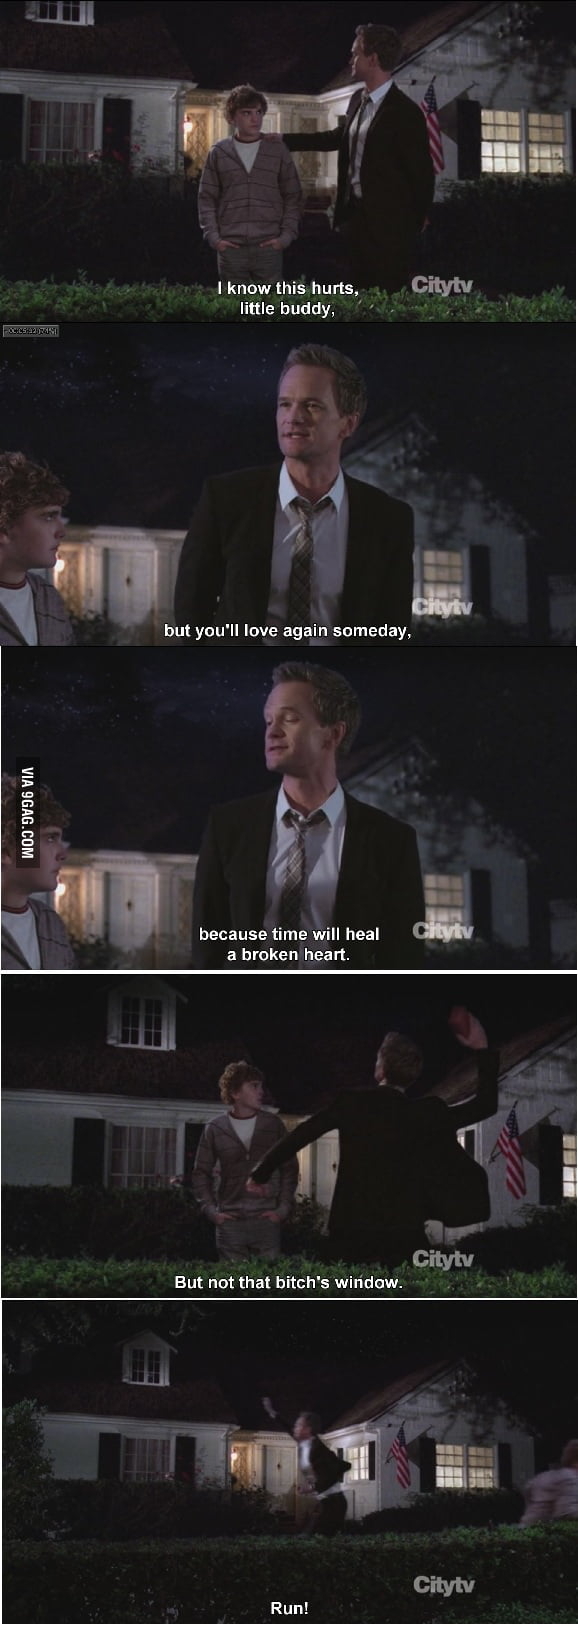 Barney facts! Love that guy